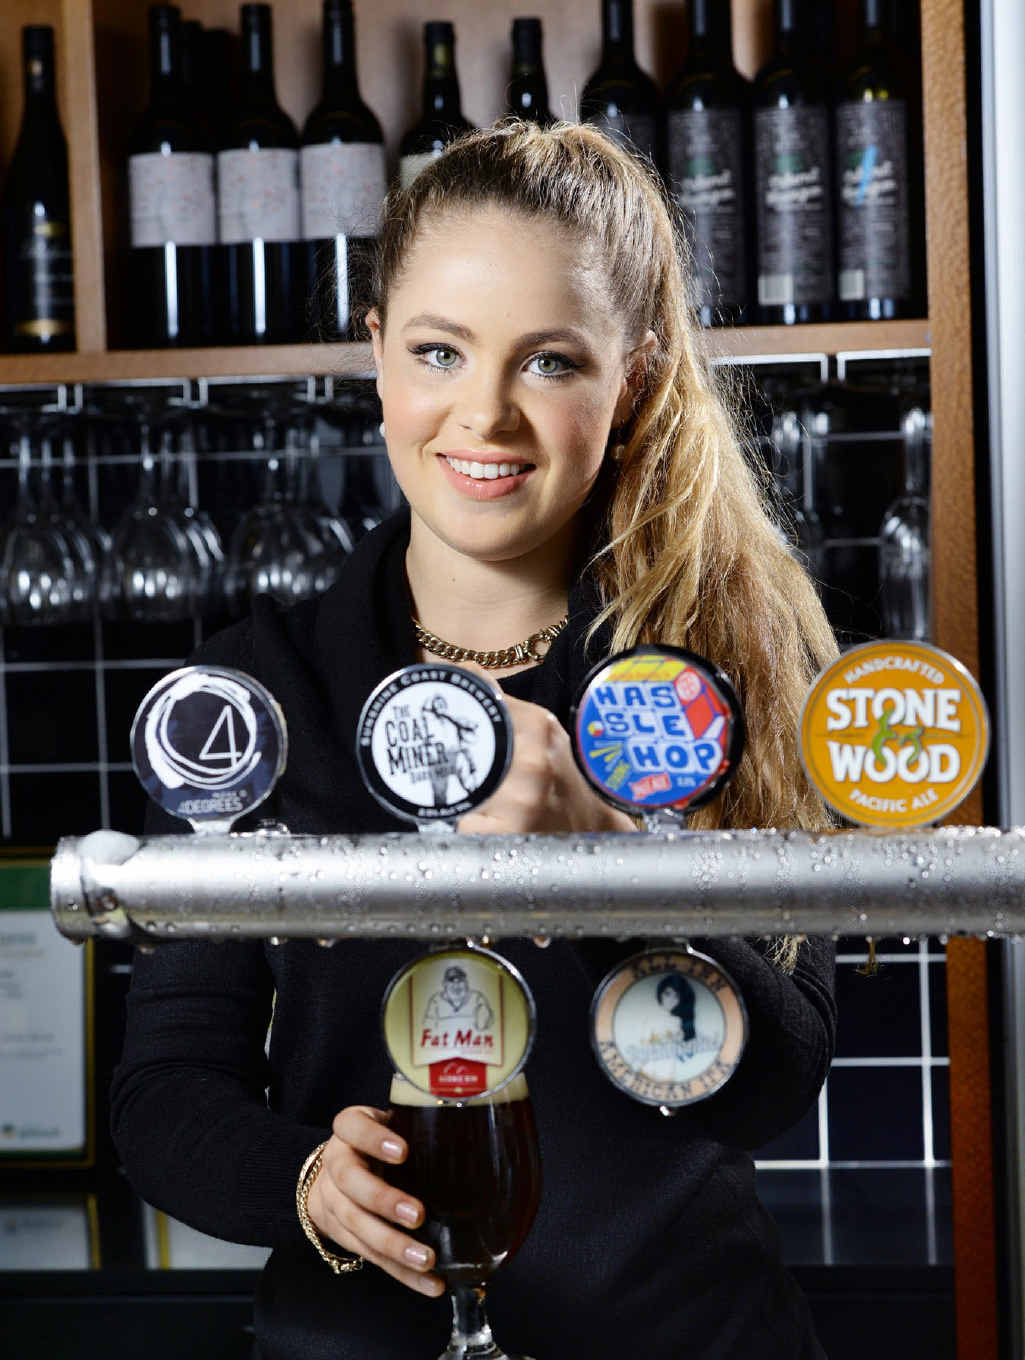 Chloe Johnston pulls one of the craft beers the Ulster Hotel has been famous for.